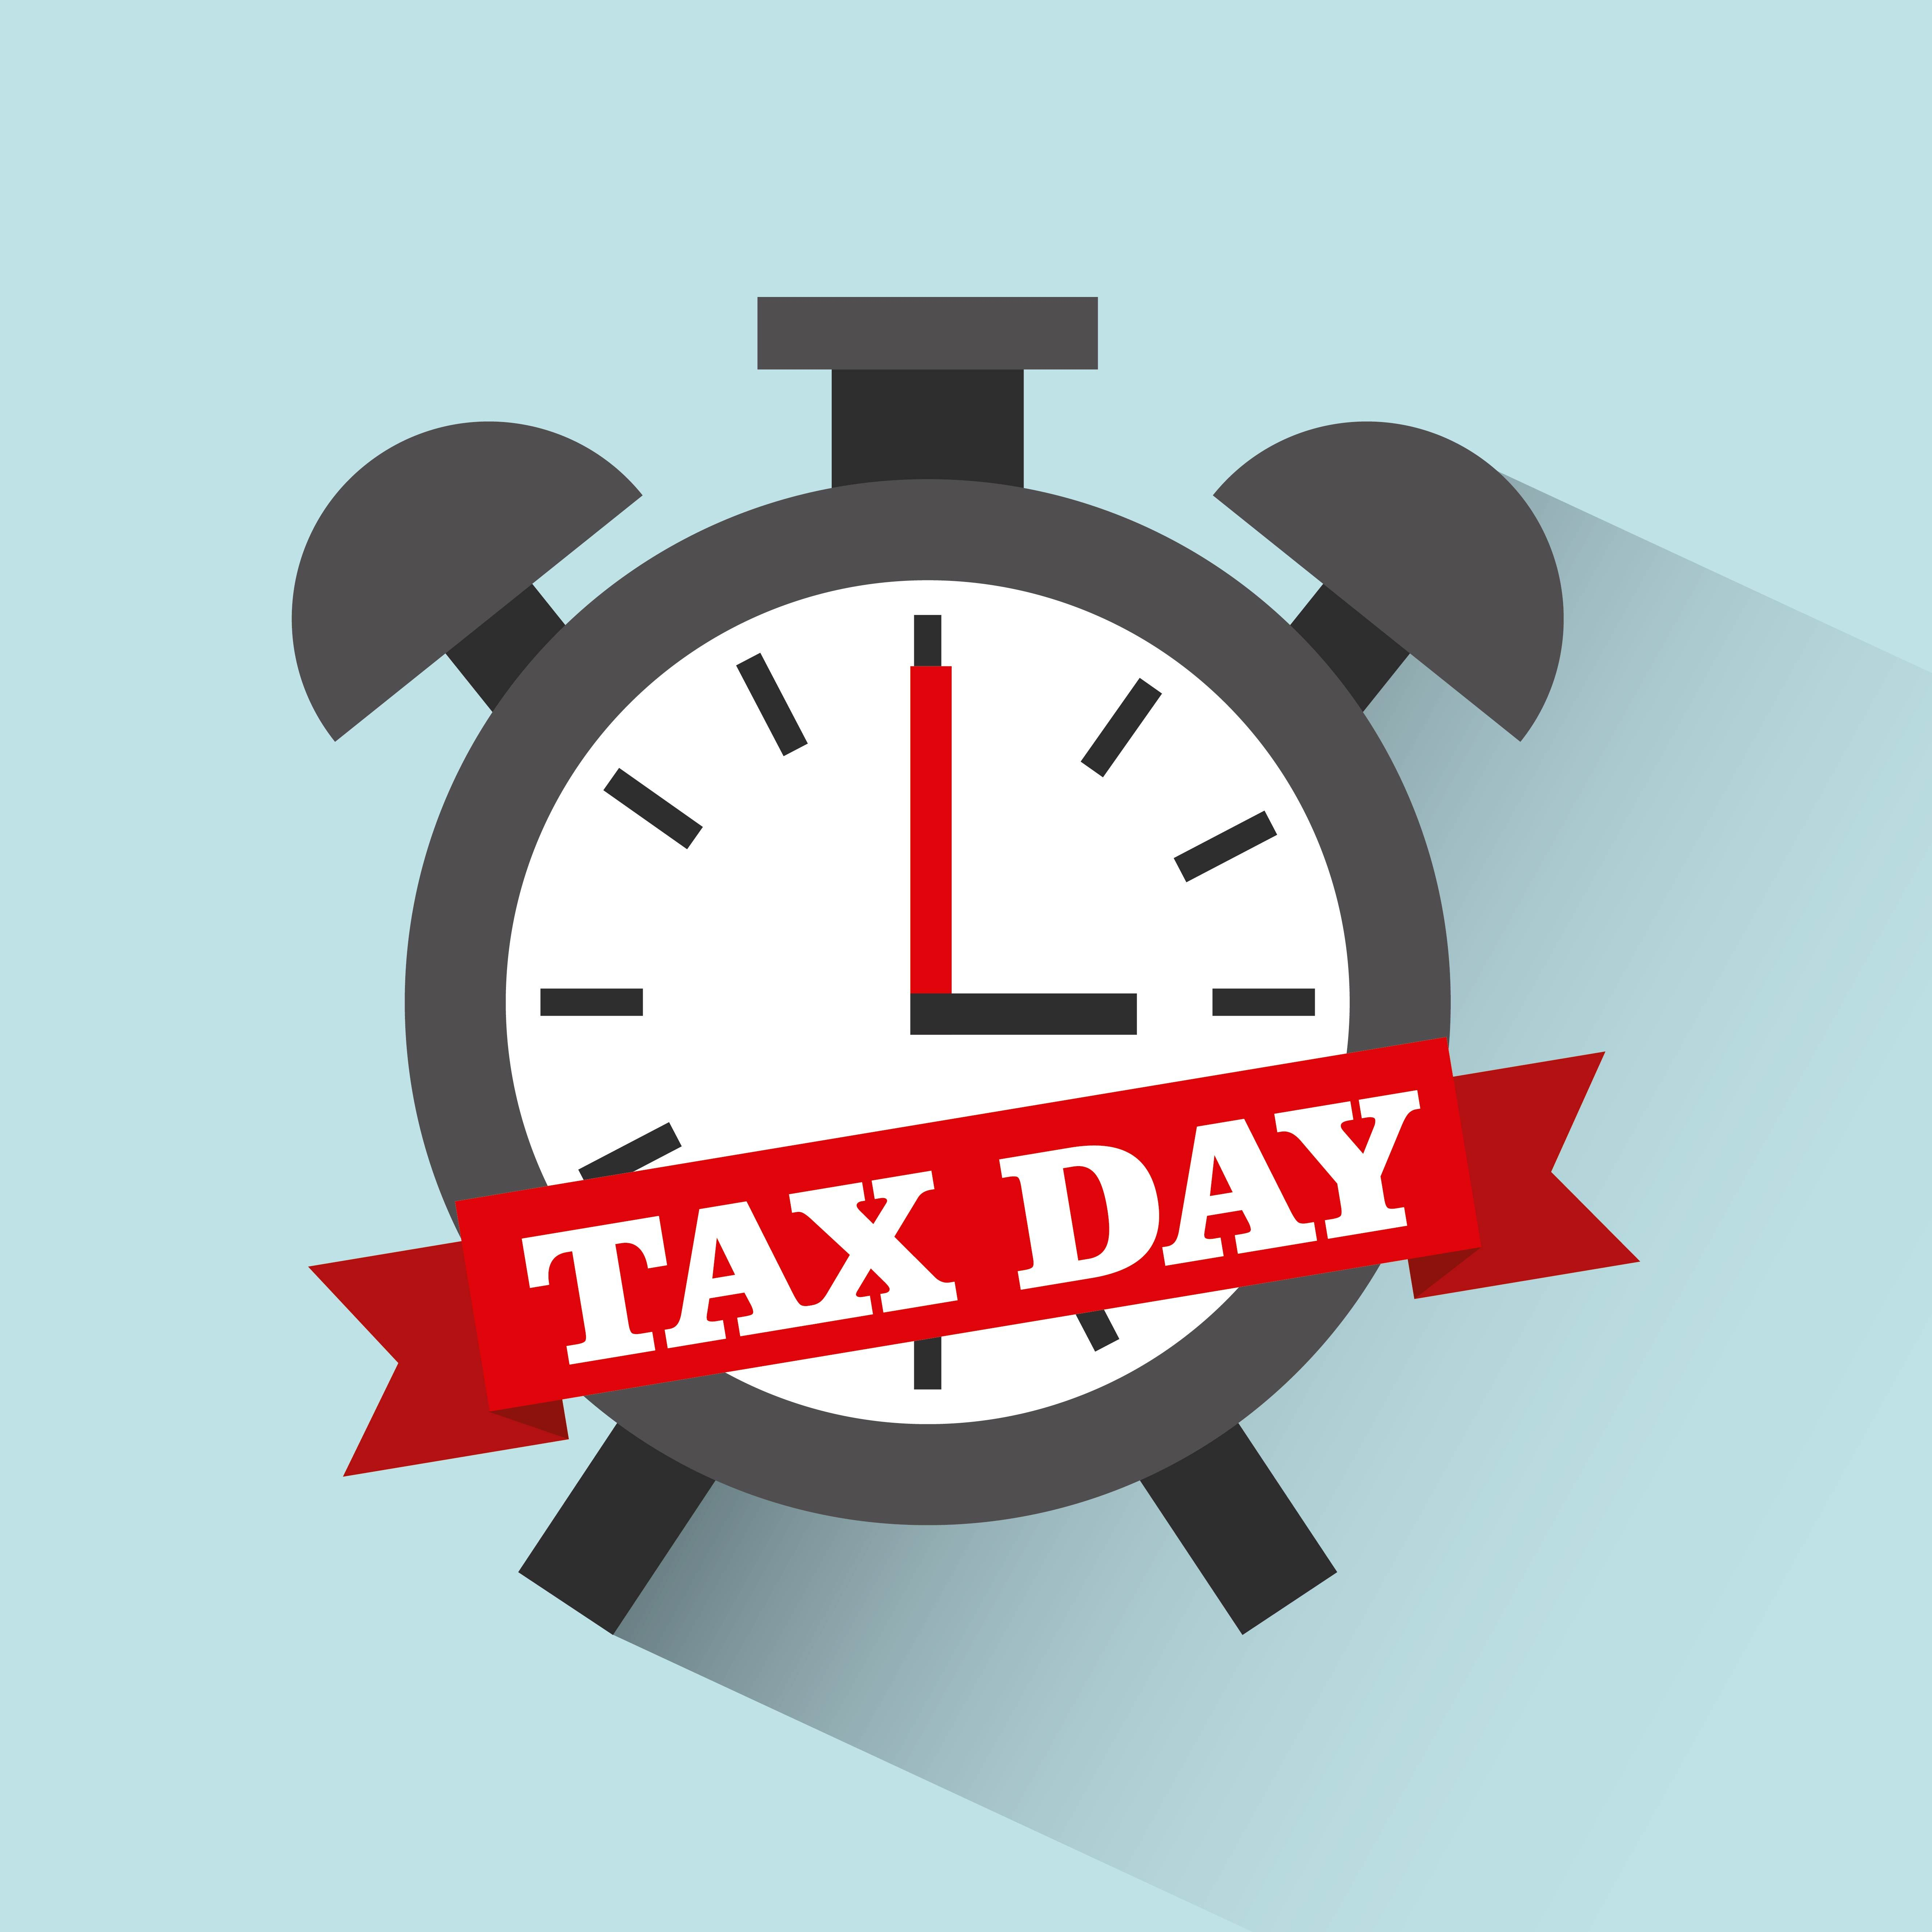 2017 tax day freebies and deals � hrscene